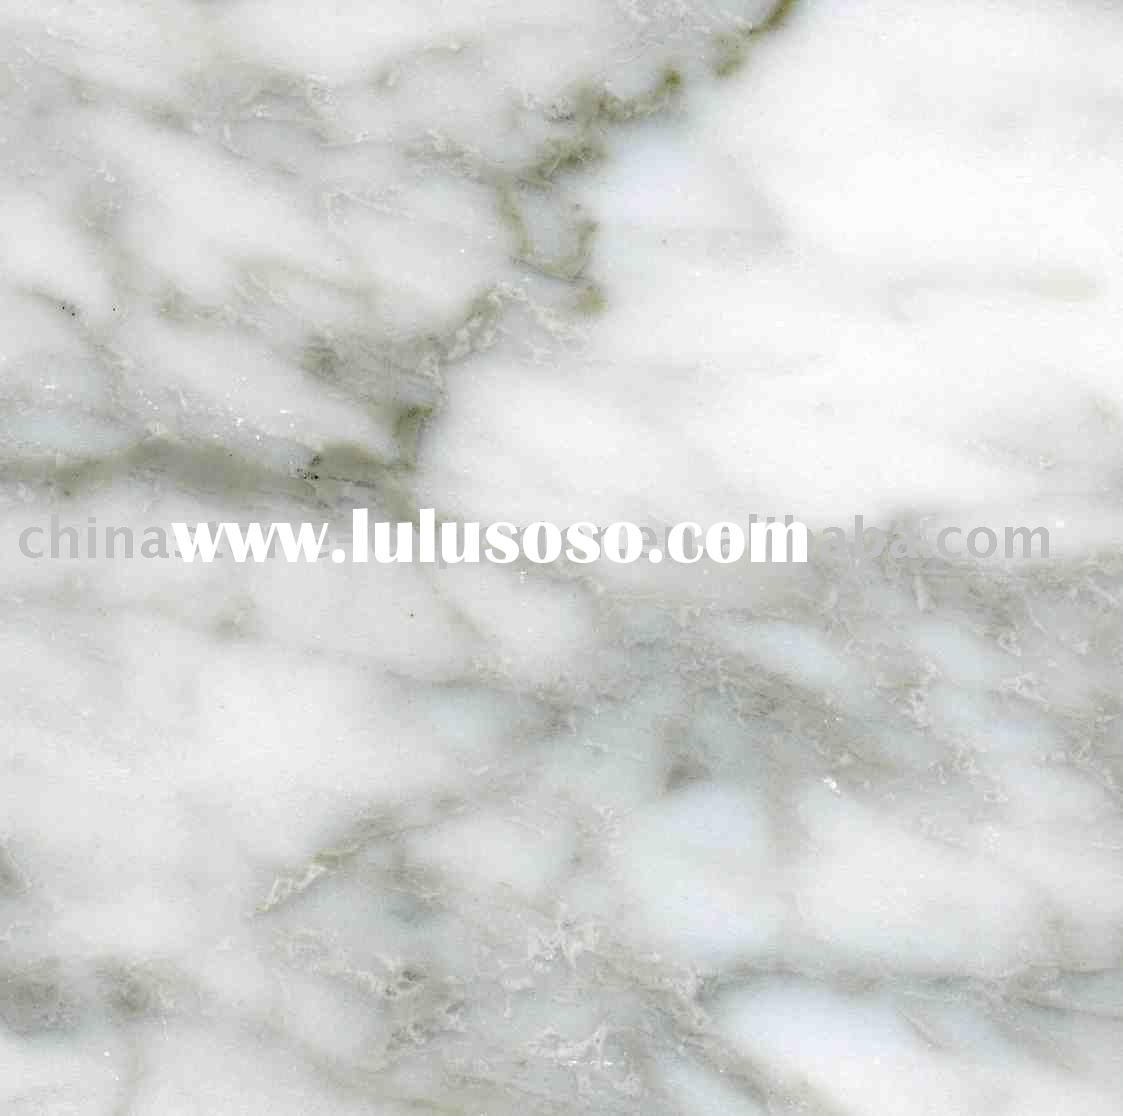 Bianco Carrara (Marble, Marble Tile, Marble slab, White Marble, Sink, Countertop, Chinese Marble, fl